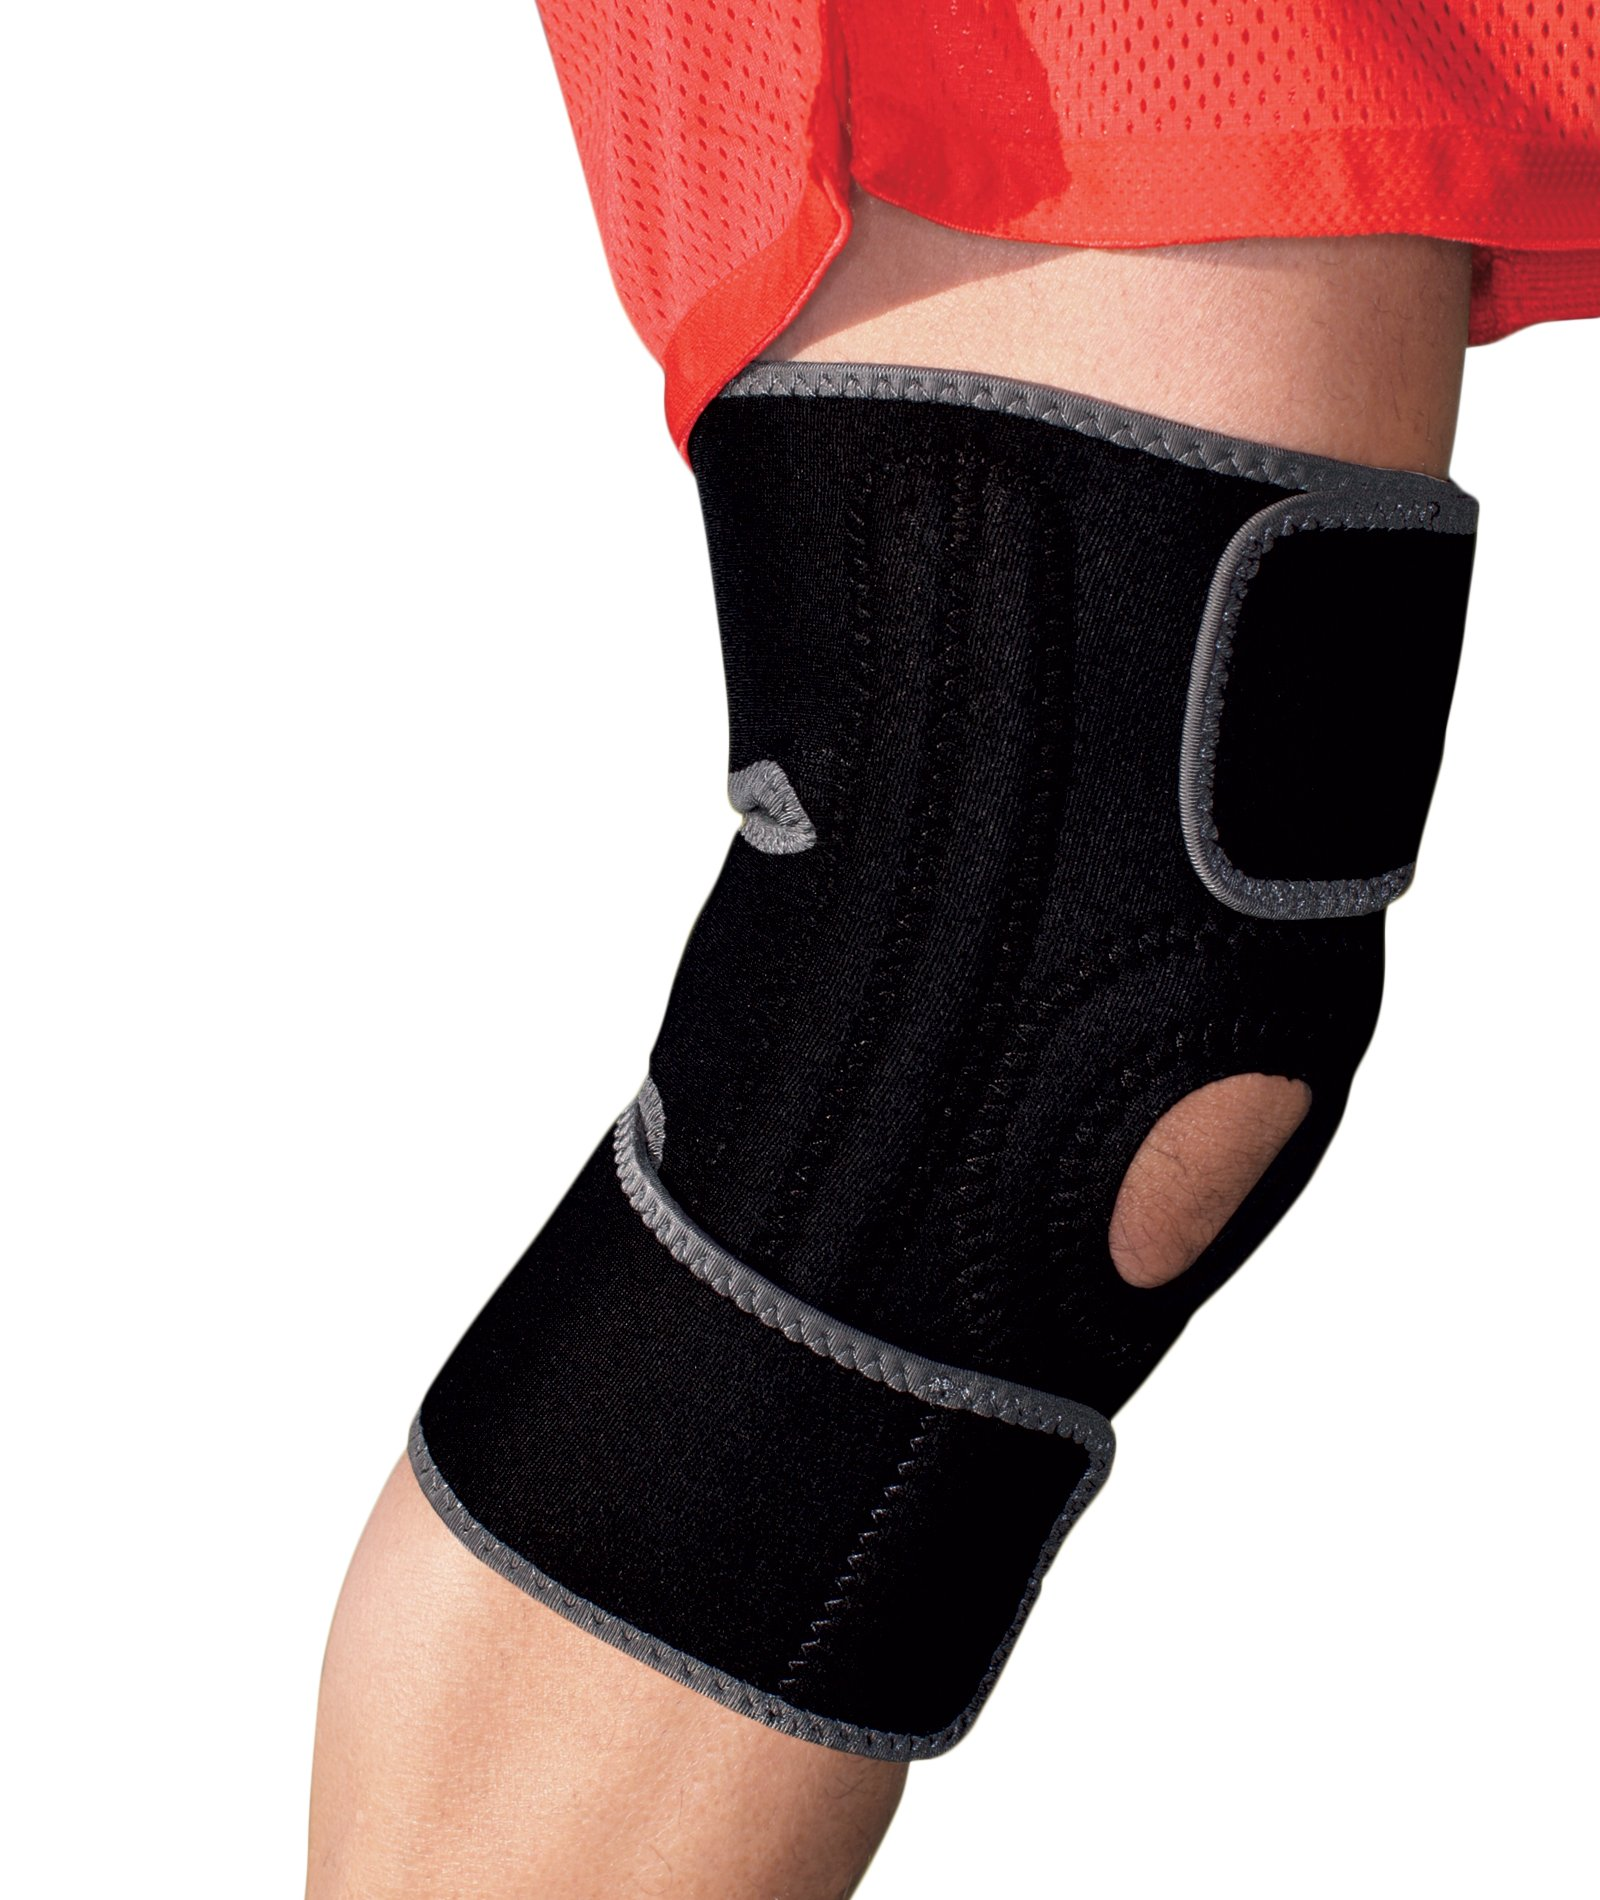 ACE Brand Knee Brace with Dual Side Stabilizers, America's Most Trusted Brand of Braces and Supports, Money Back Satisfaction Guarantee